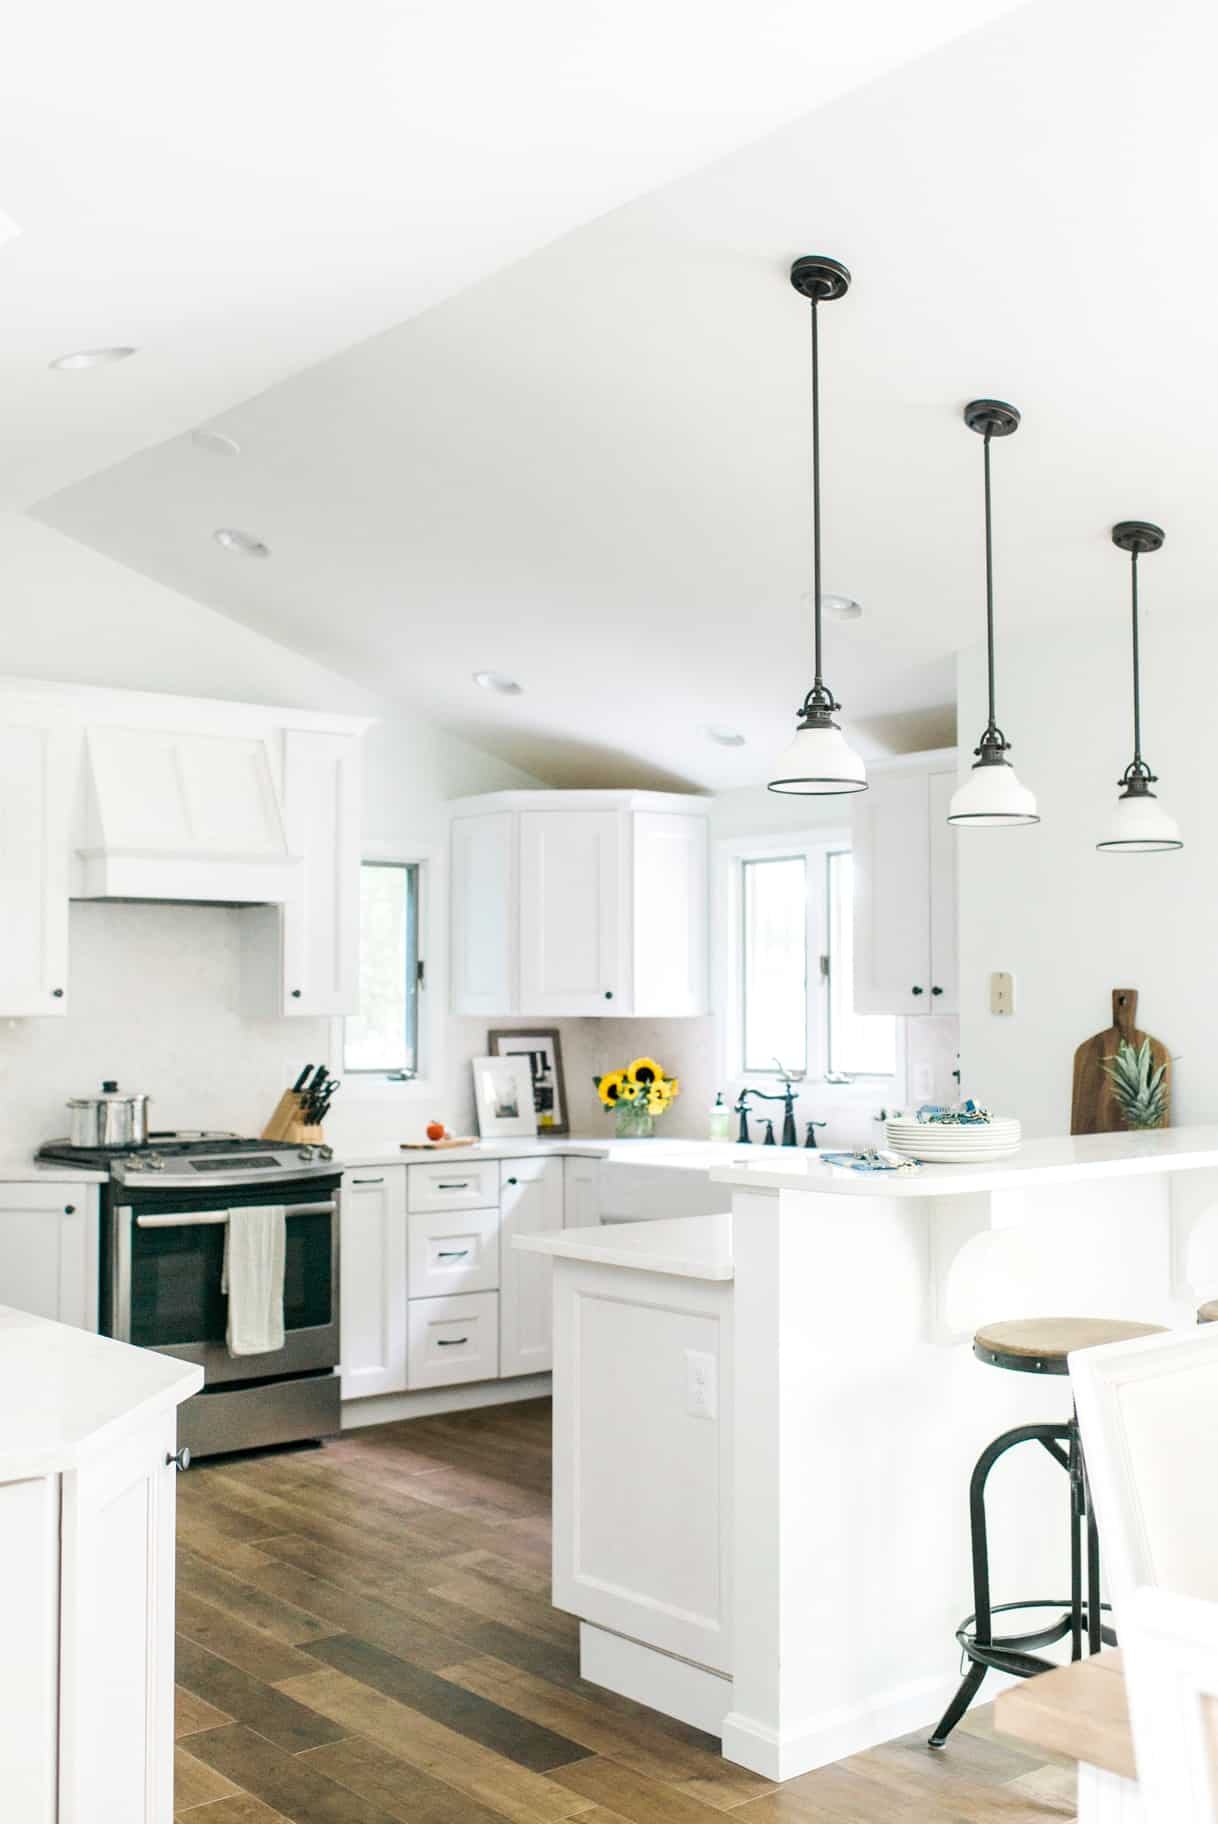 coastal kitchen design.  Coastal inspired kitchen renovation in Annapolis Maryland by branding designers Davey Krista Jones Kitchen Design White Cabinets